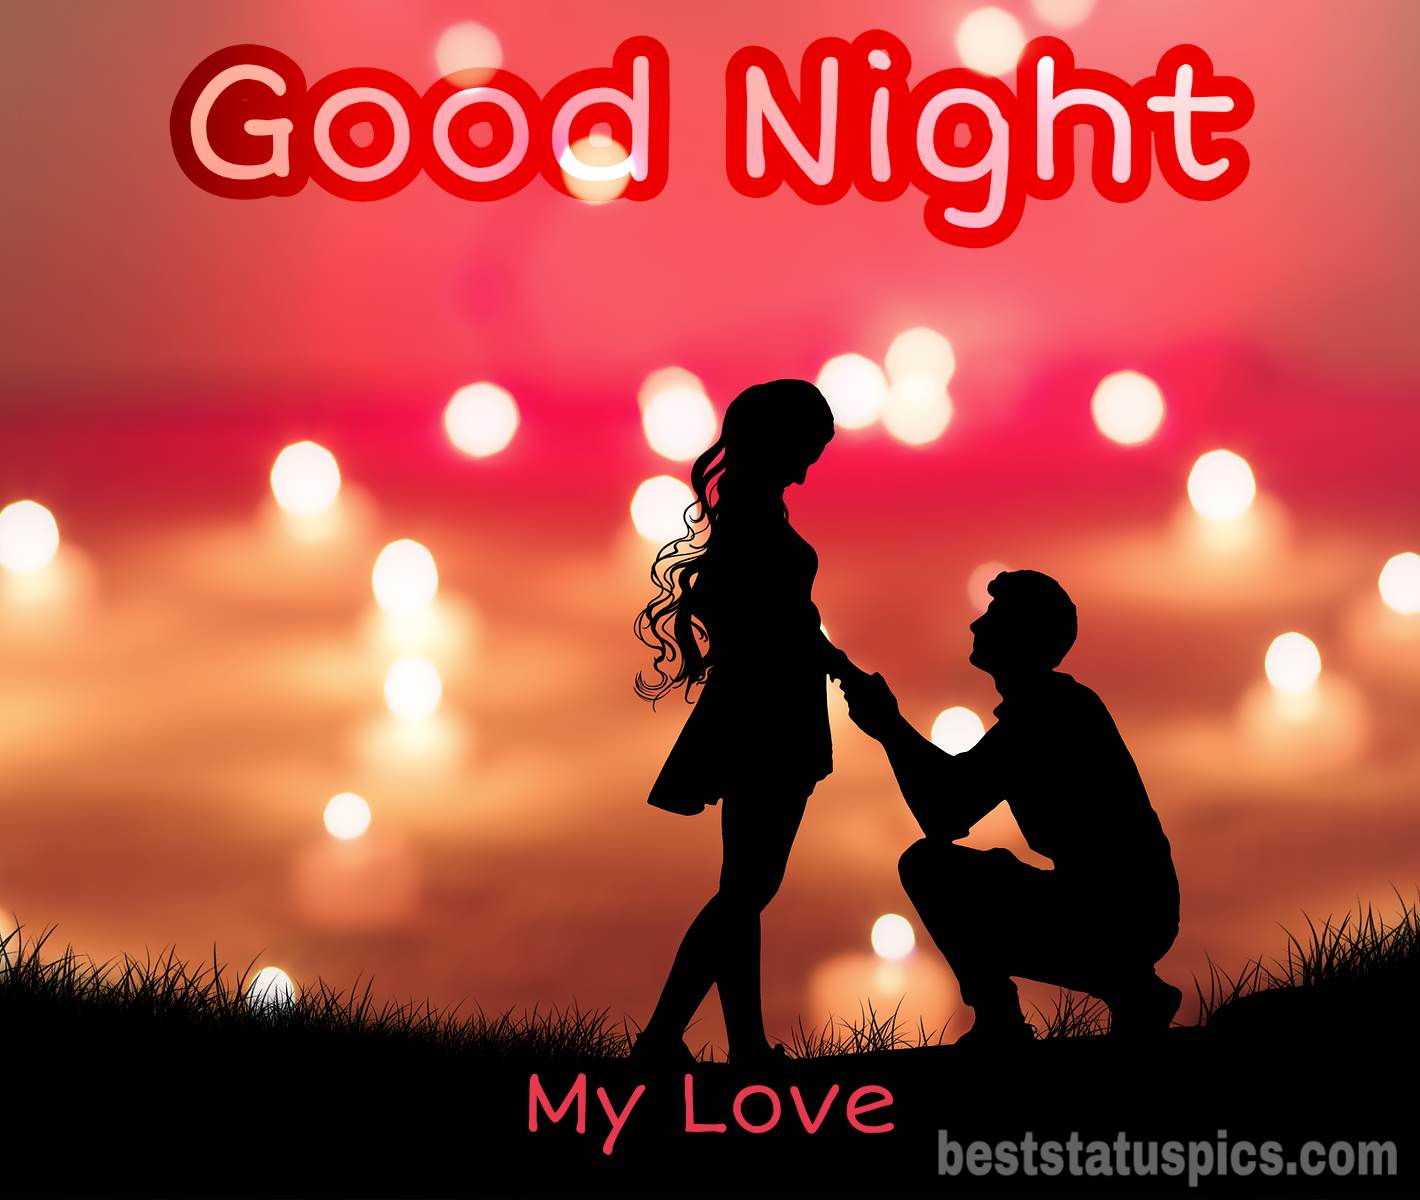 Good Night Images With Romantic Love Couple Download Hd Best Status Pics